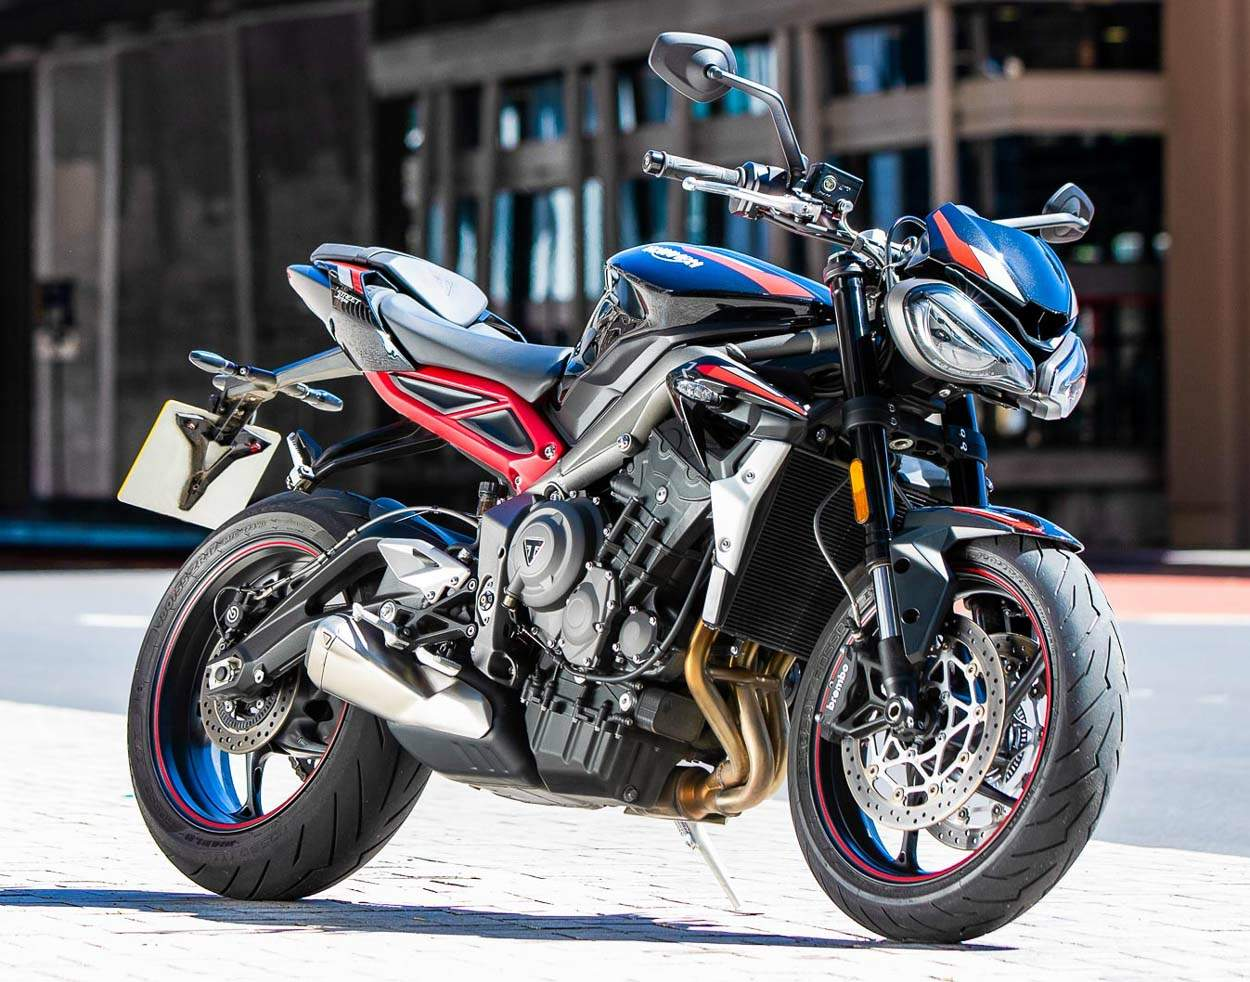 Triumph Street Triple R technical specifications